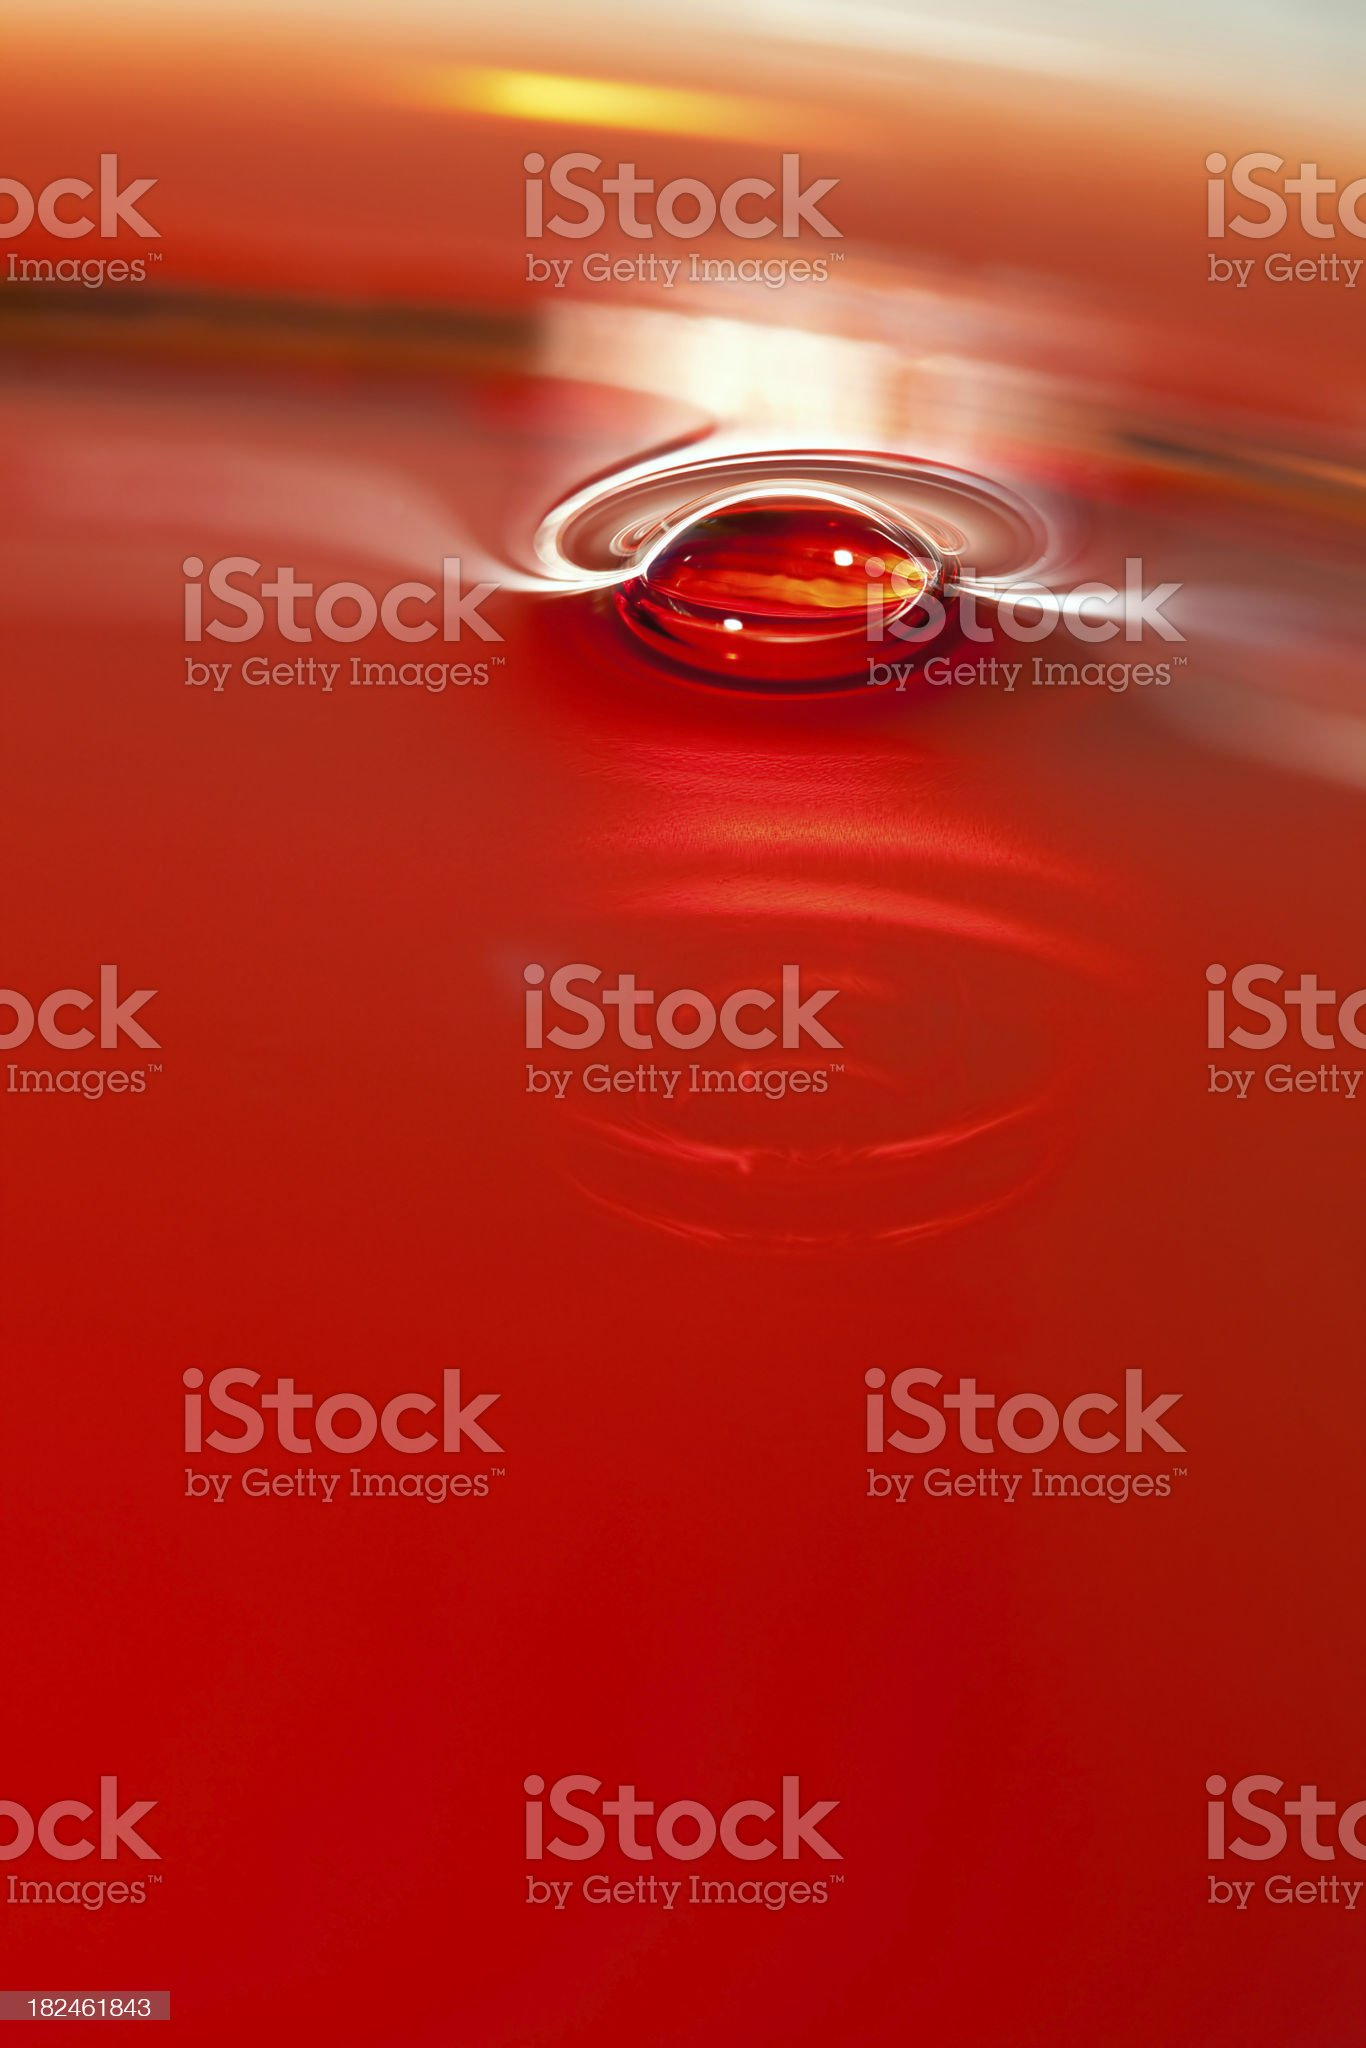 Red Wine Bubble royalty-free stock photo